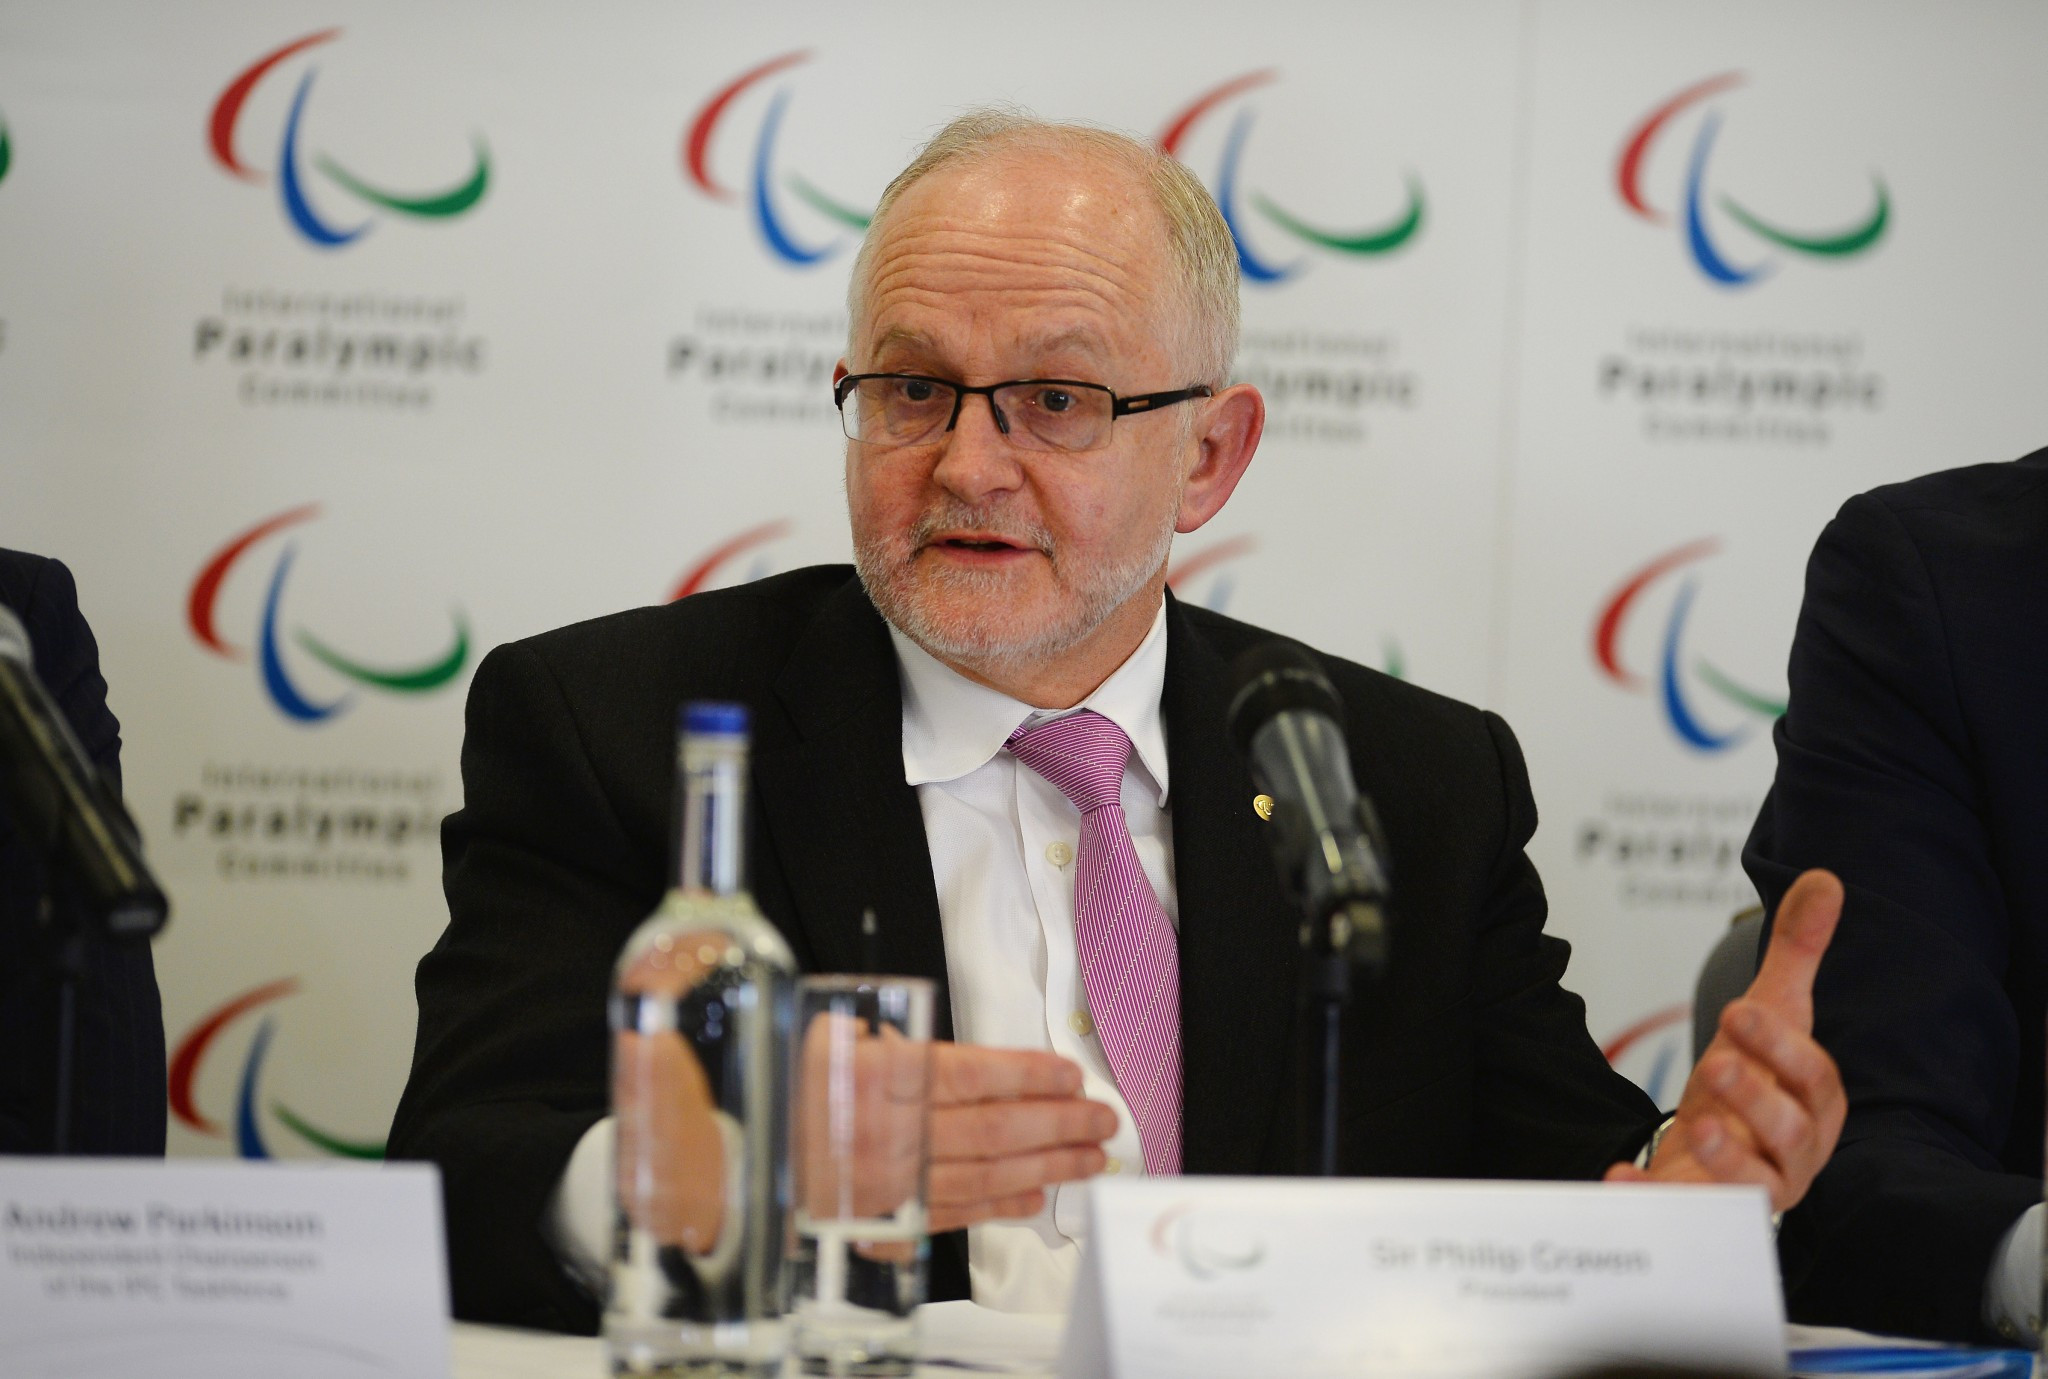 IPC President Sir Philip Craven warned in May that it would be